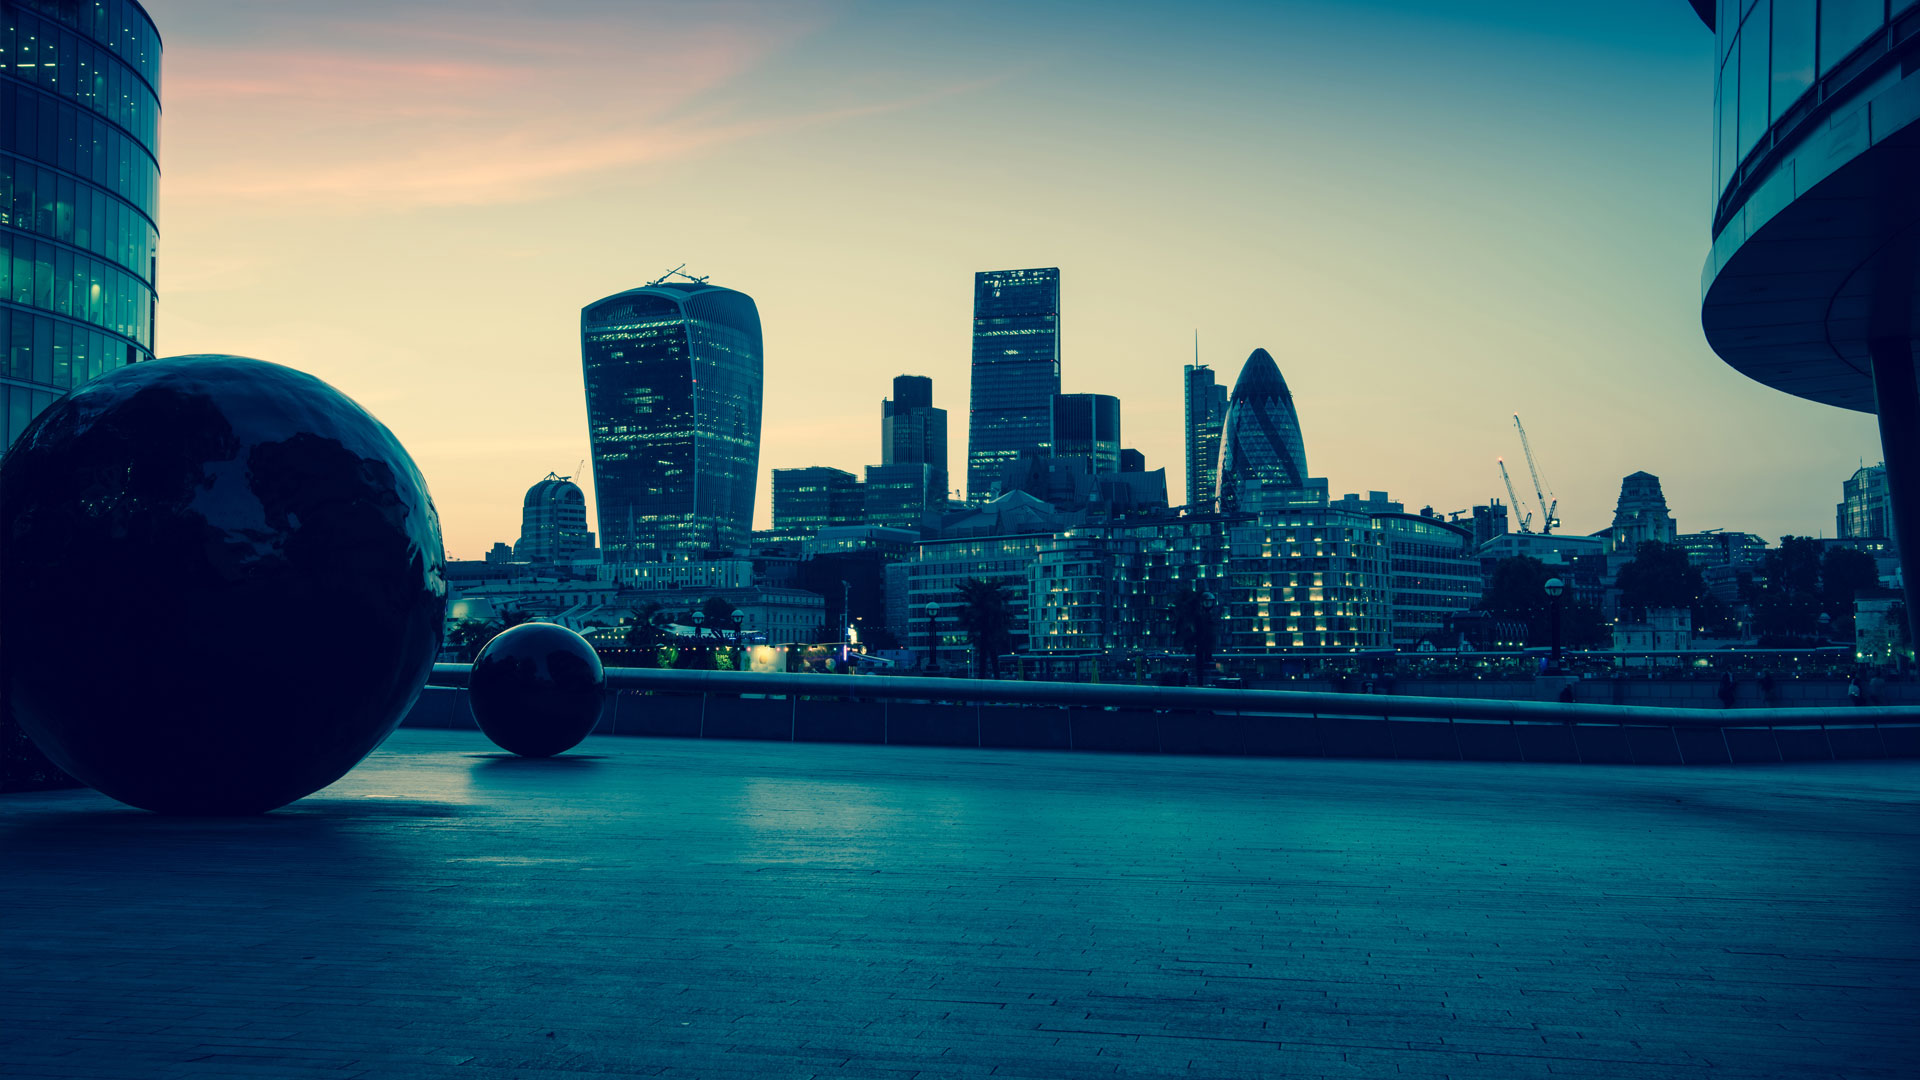 London skyline looking at the City